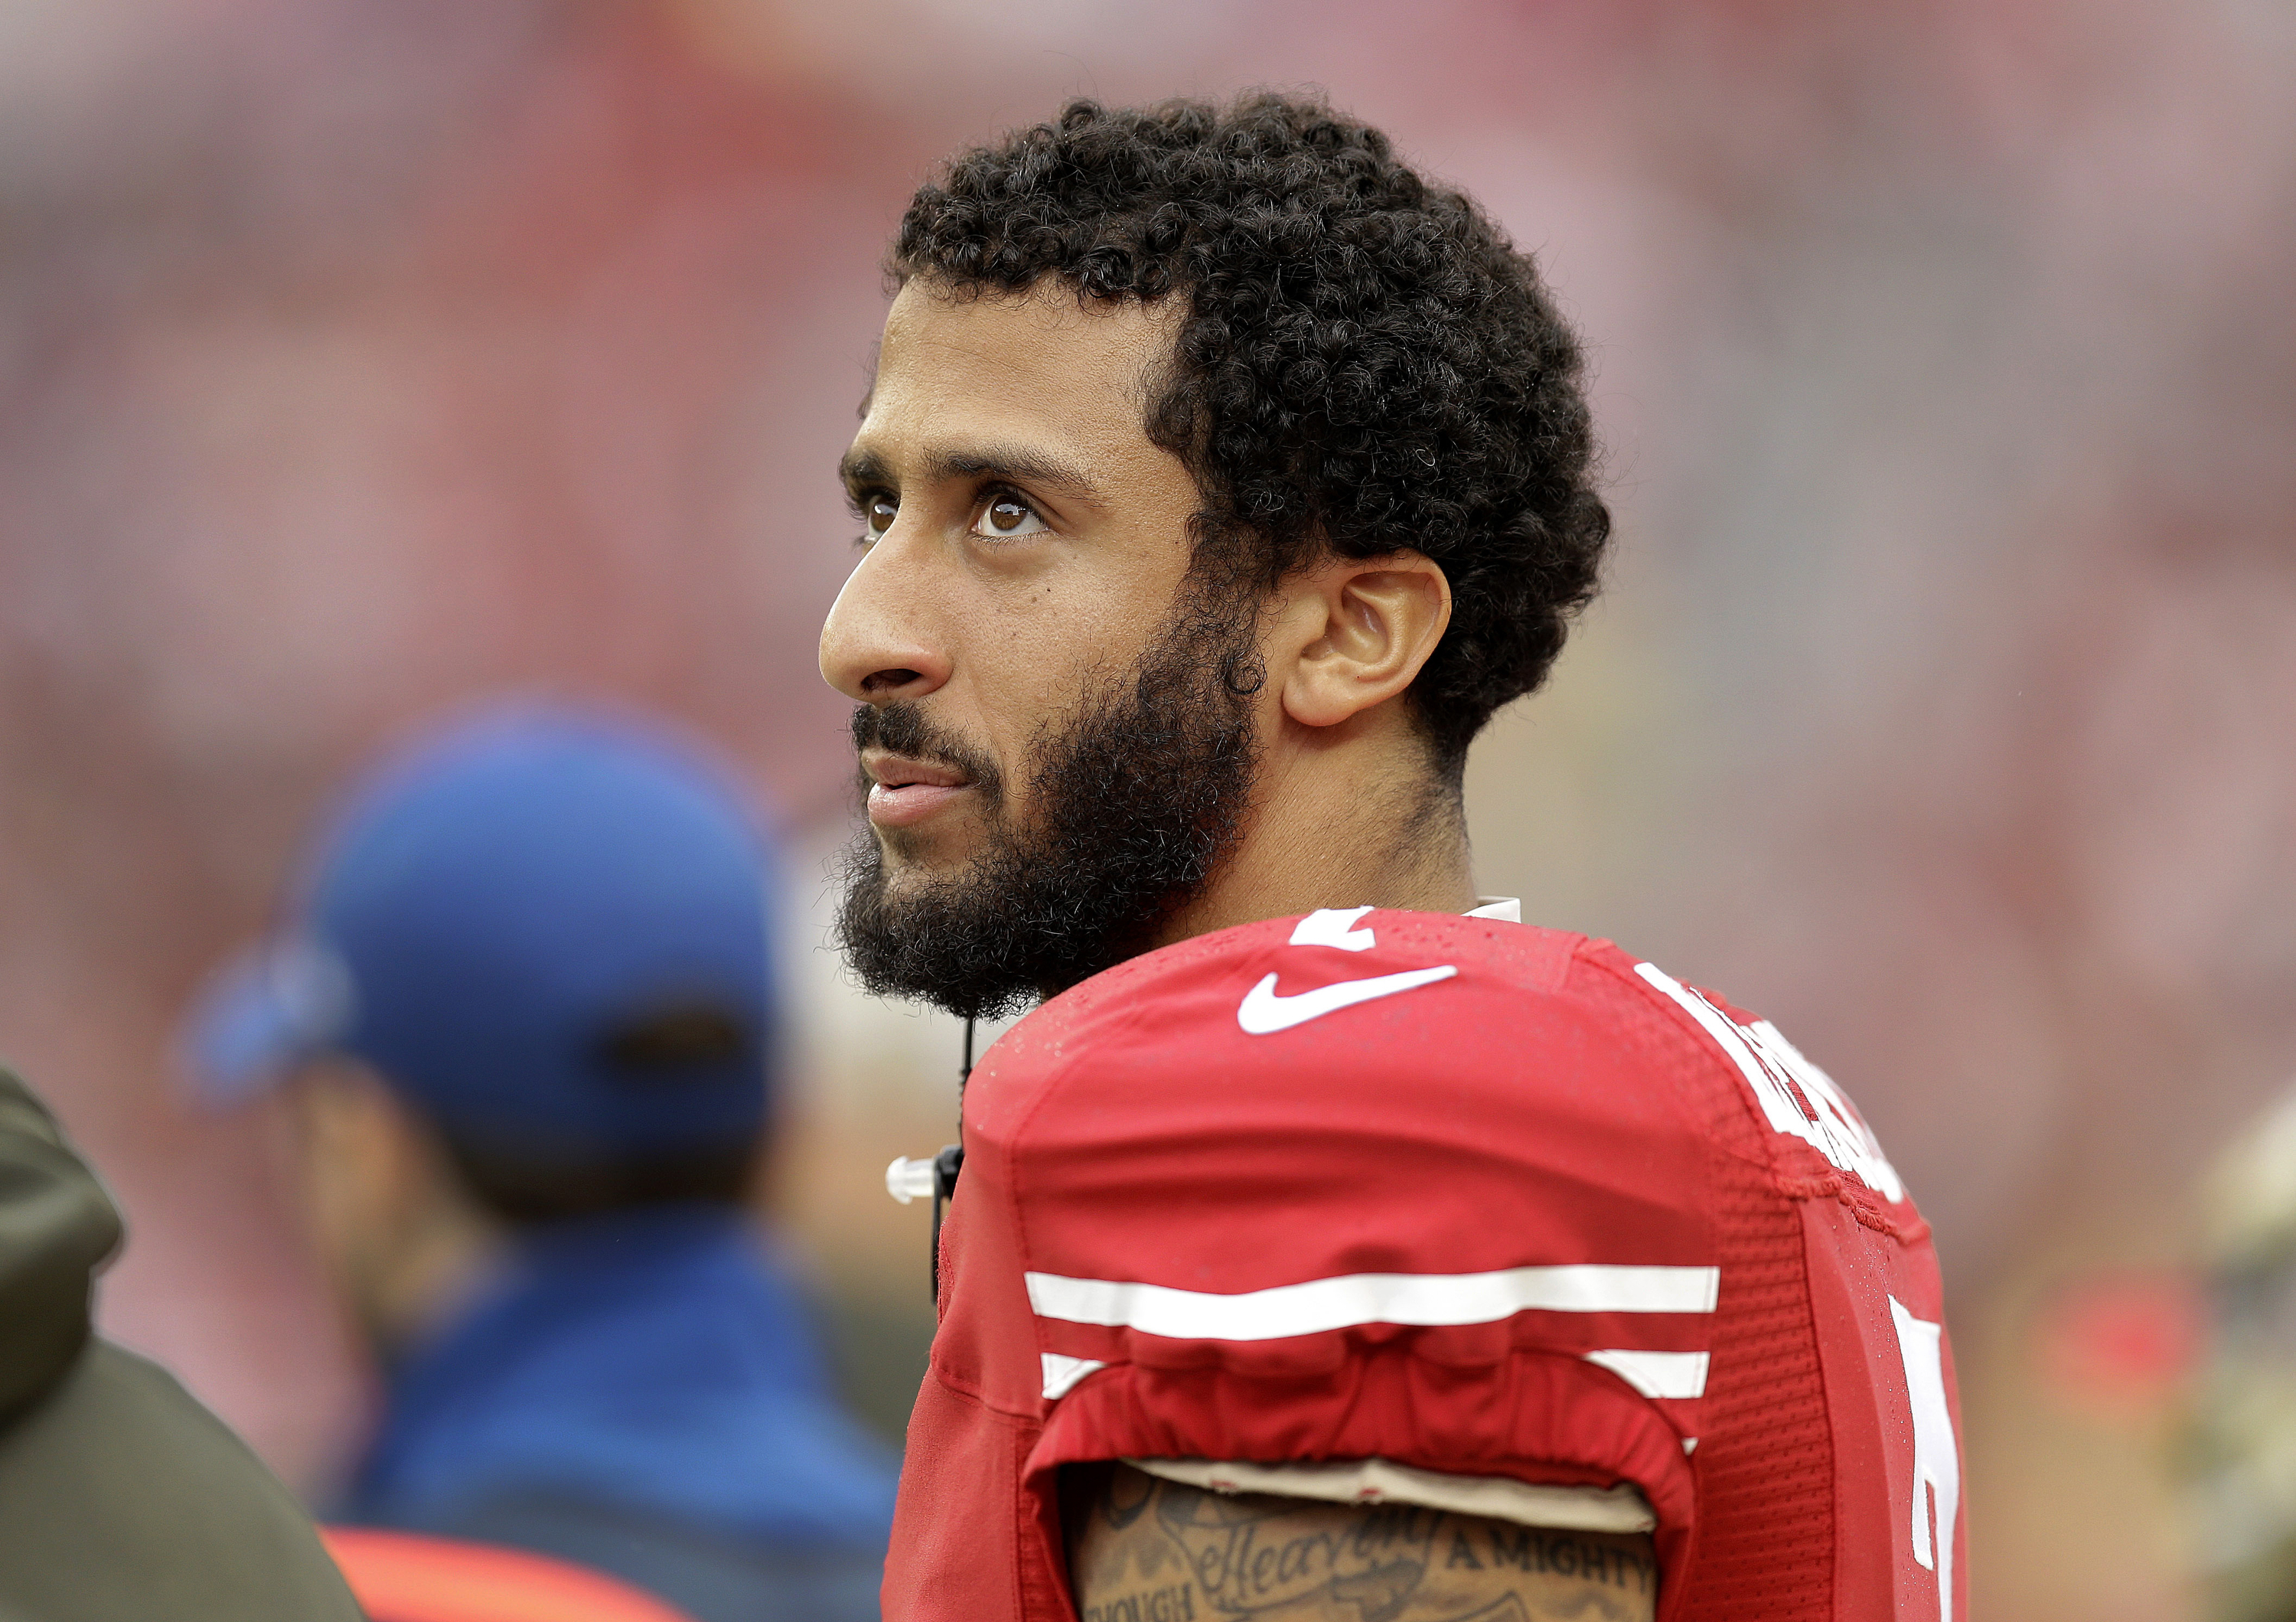 FILE - In this Nov. 8, 2015, file photo, San Francisco 49ers quarterback Colin Kaepernick stands on the field during an NFL football game against the Atlanta Falcons in Santa Clara, Calif. Trent Baalke is not ruling out the possibility of still striking a